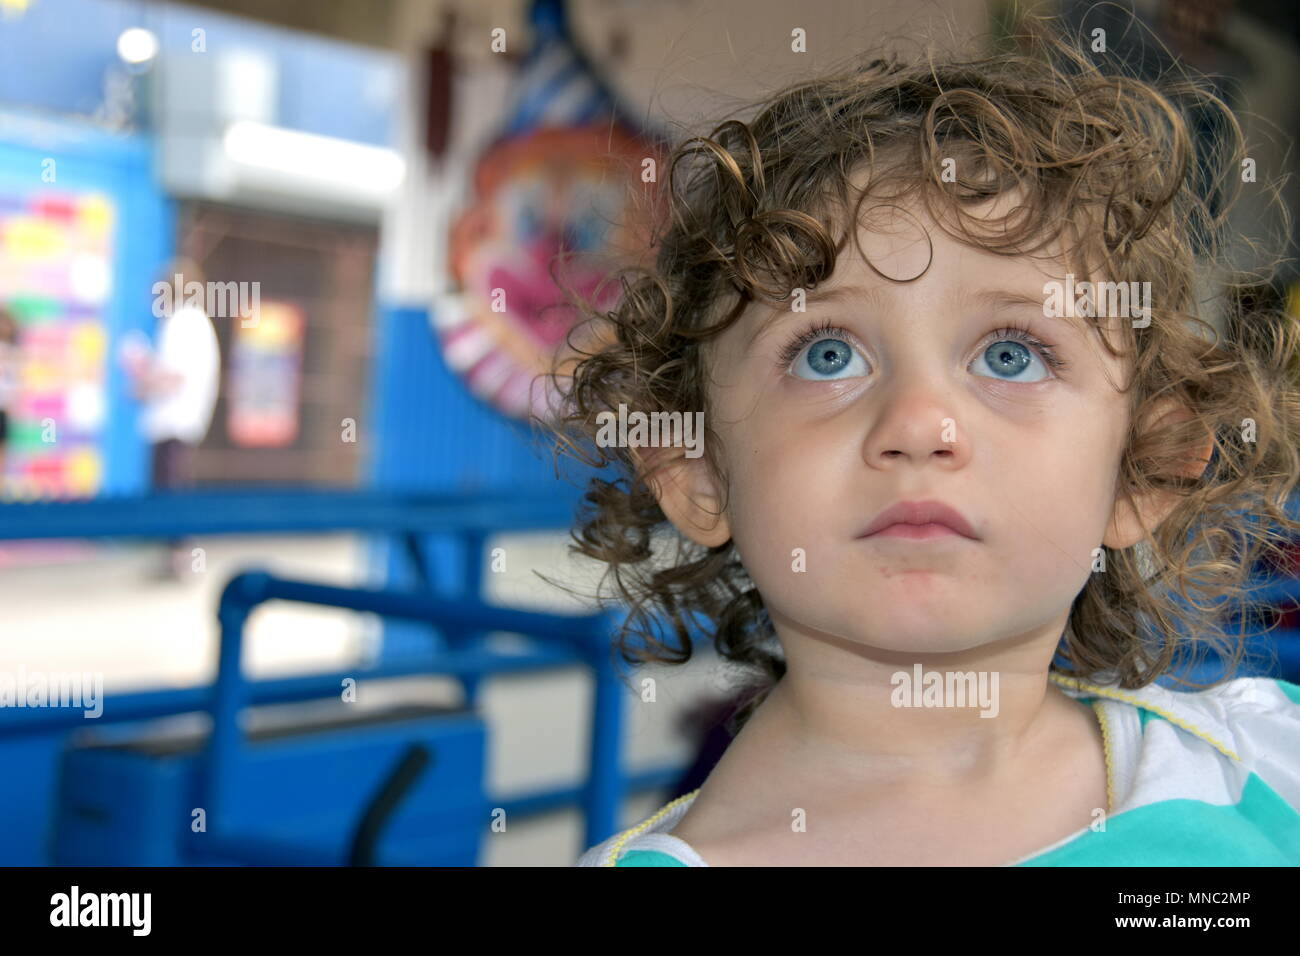 Beautiful little girl stares up at an amusement park ride while waiting below in the line - Stock Image